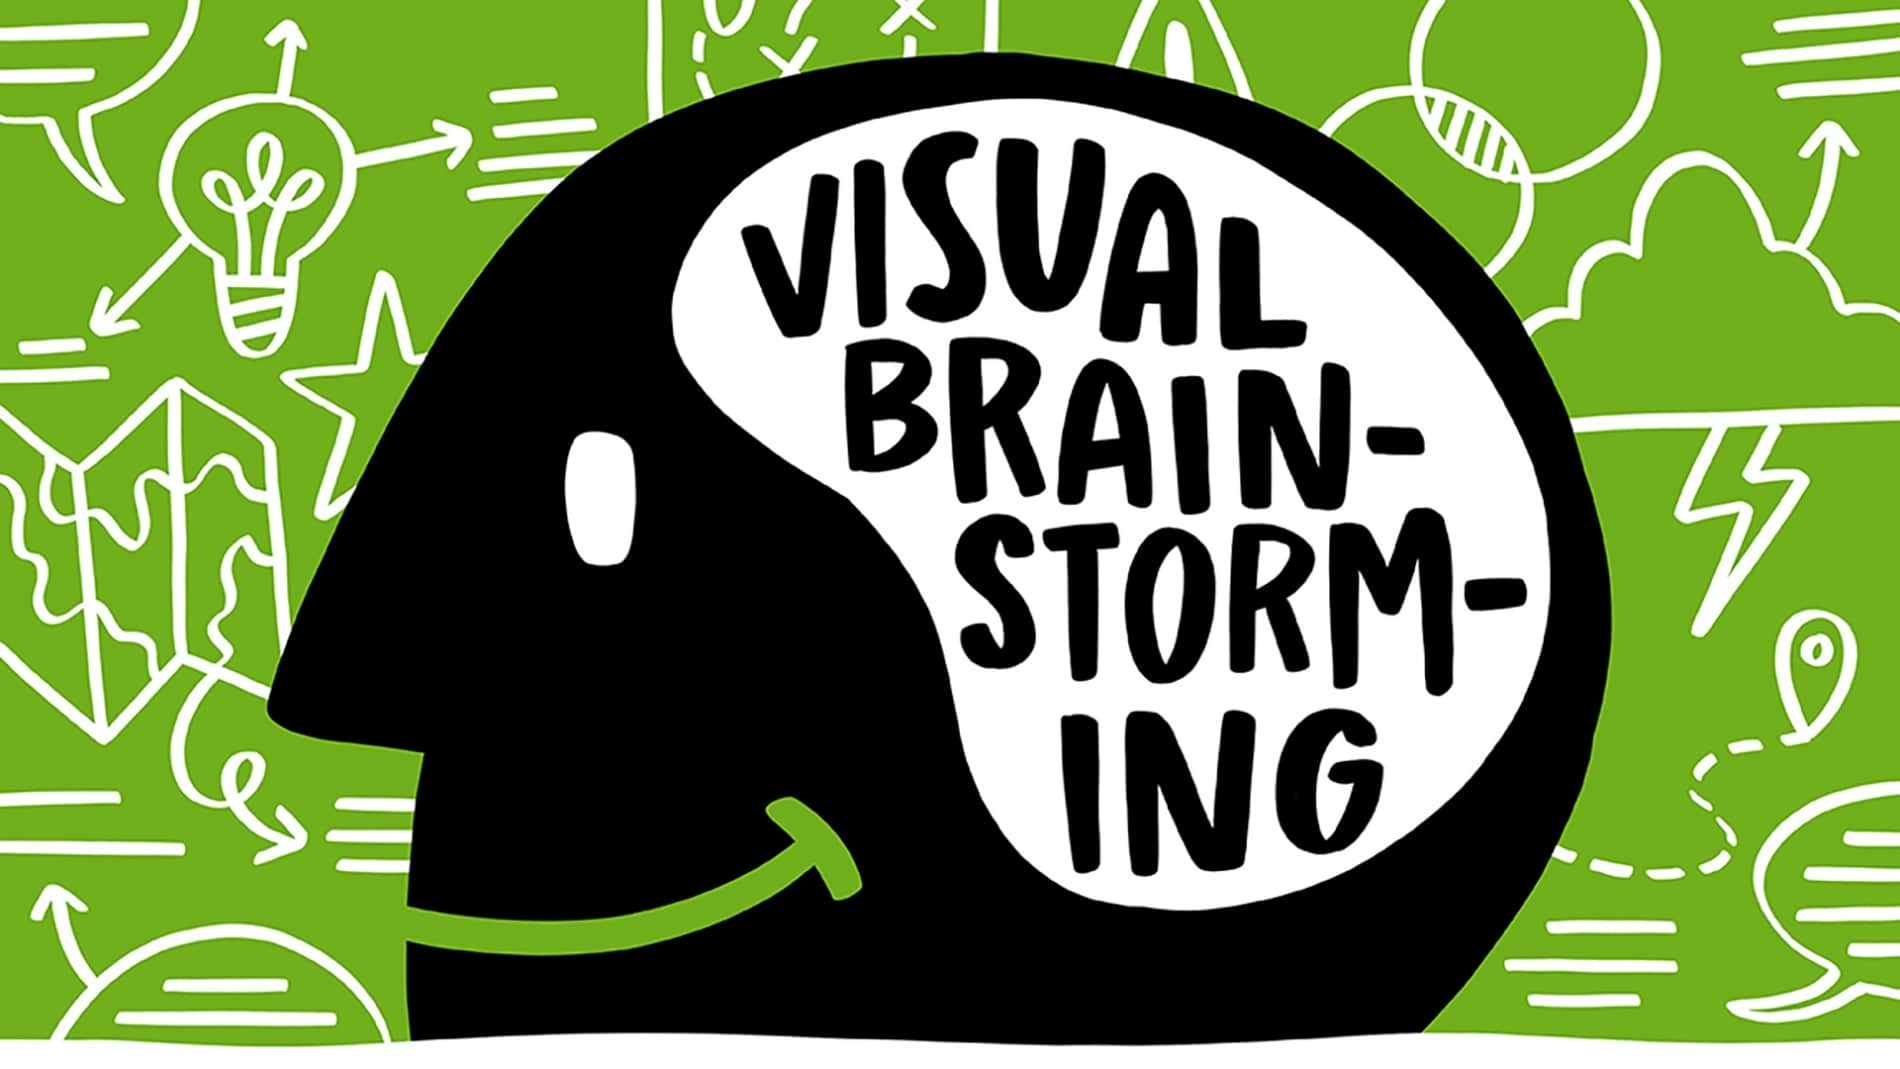 How to Use Visual Brainstorming Techniques to Develop Organized Ideas